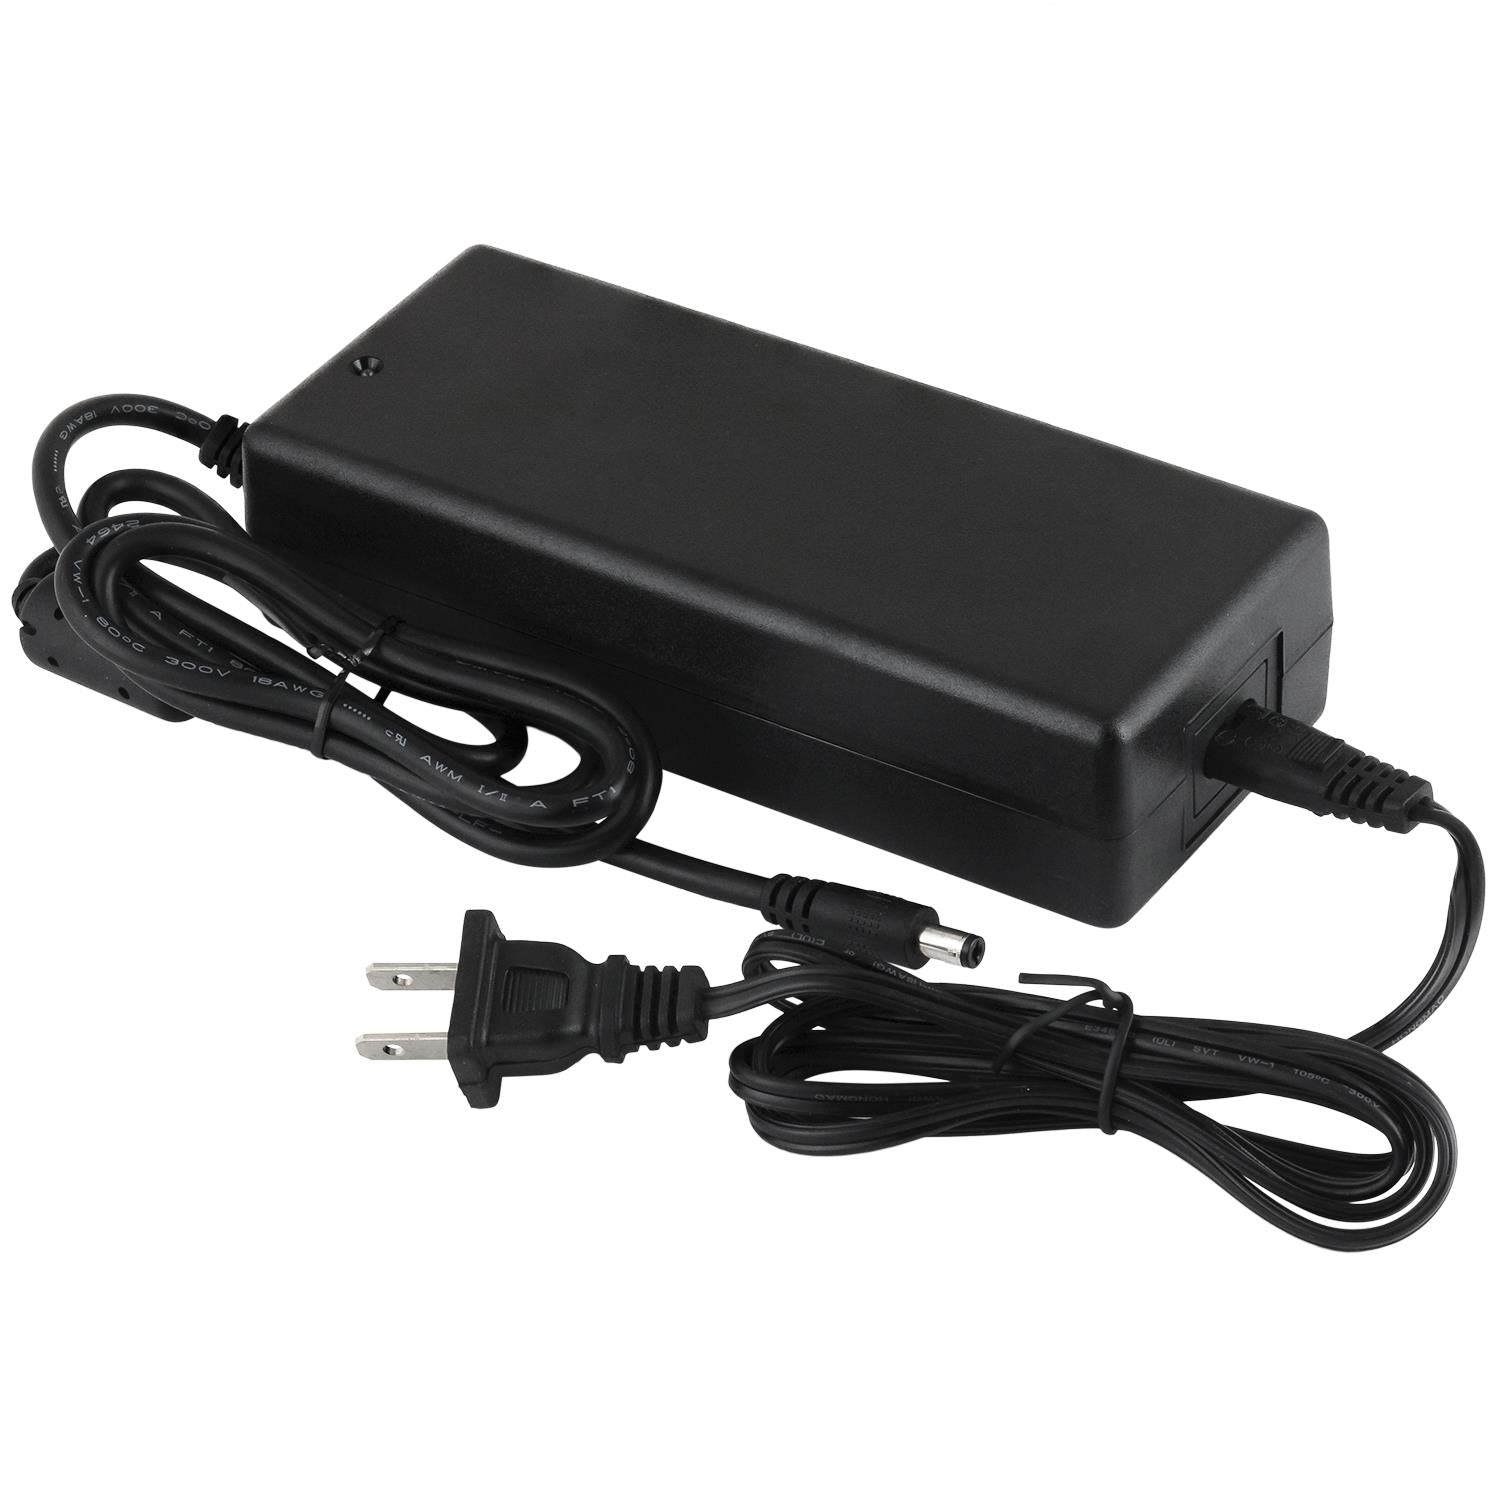 SUNLITE 80973-SU 150W 24V Power Adapter for Controller Desktop Power Adapter